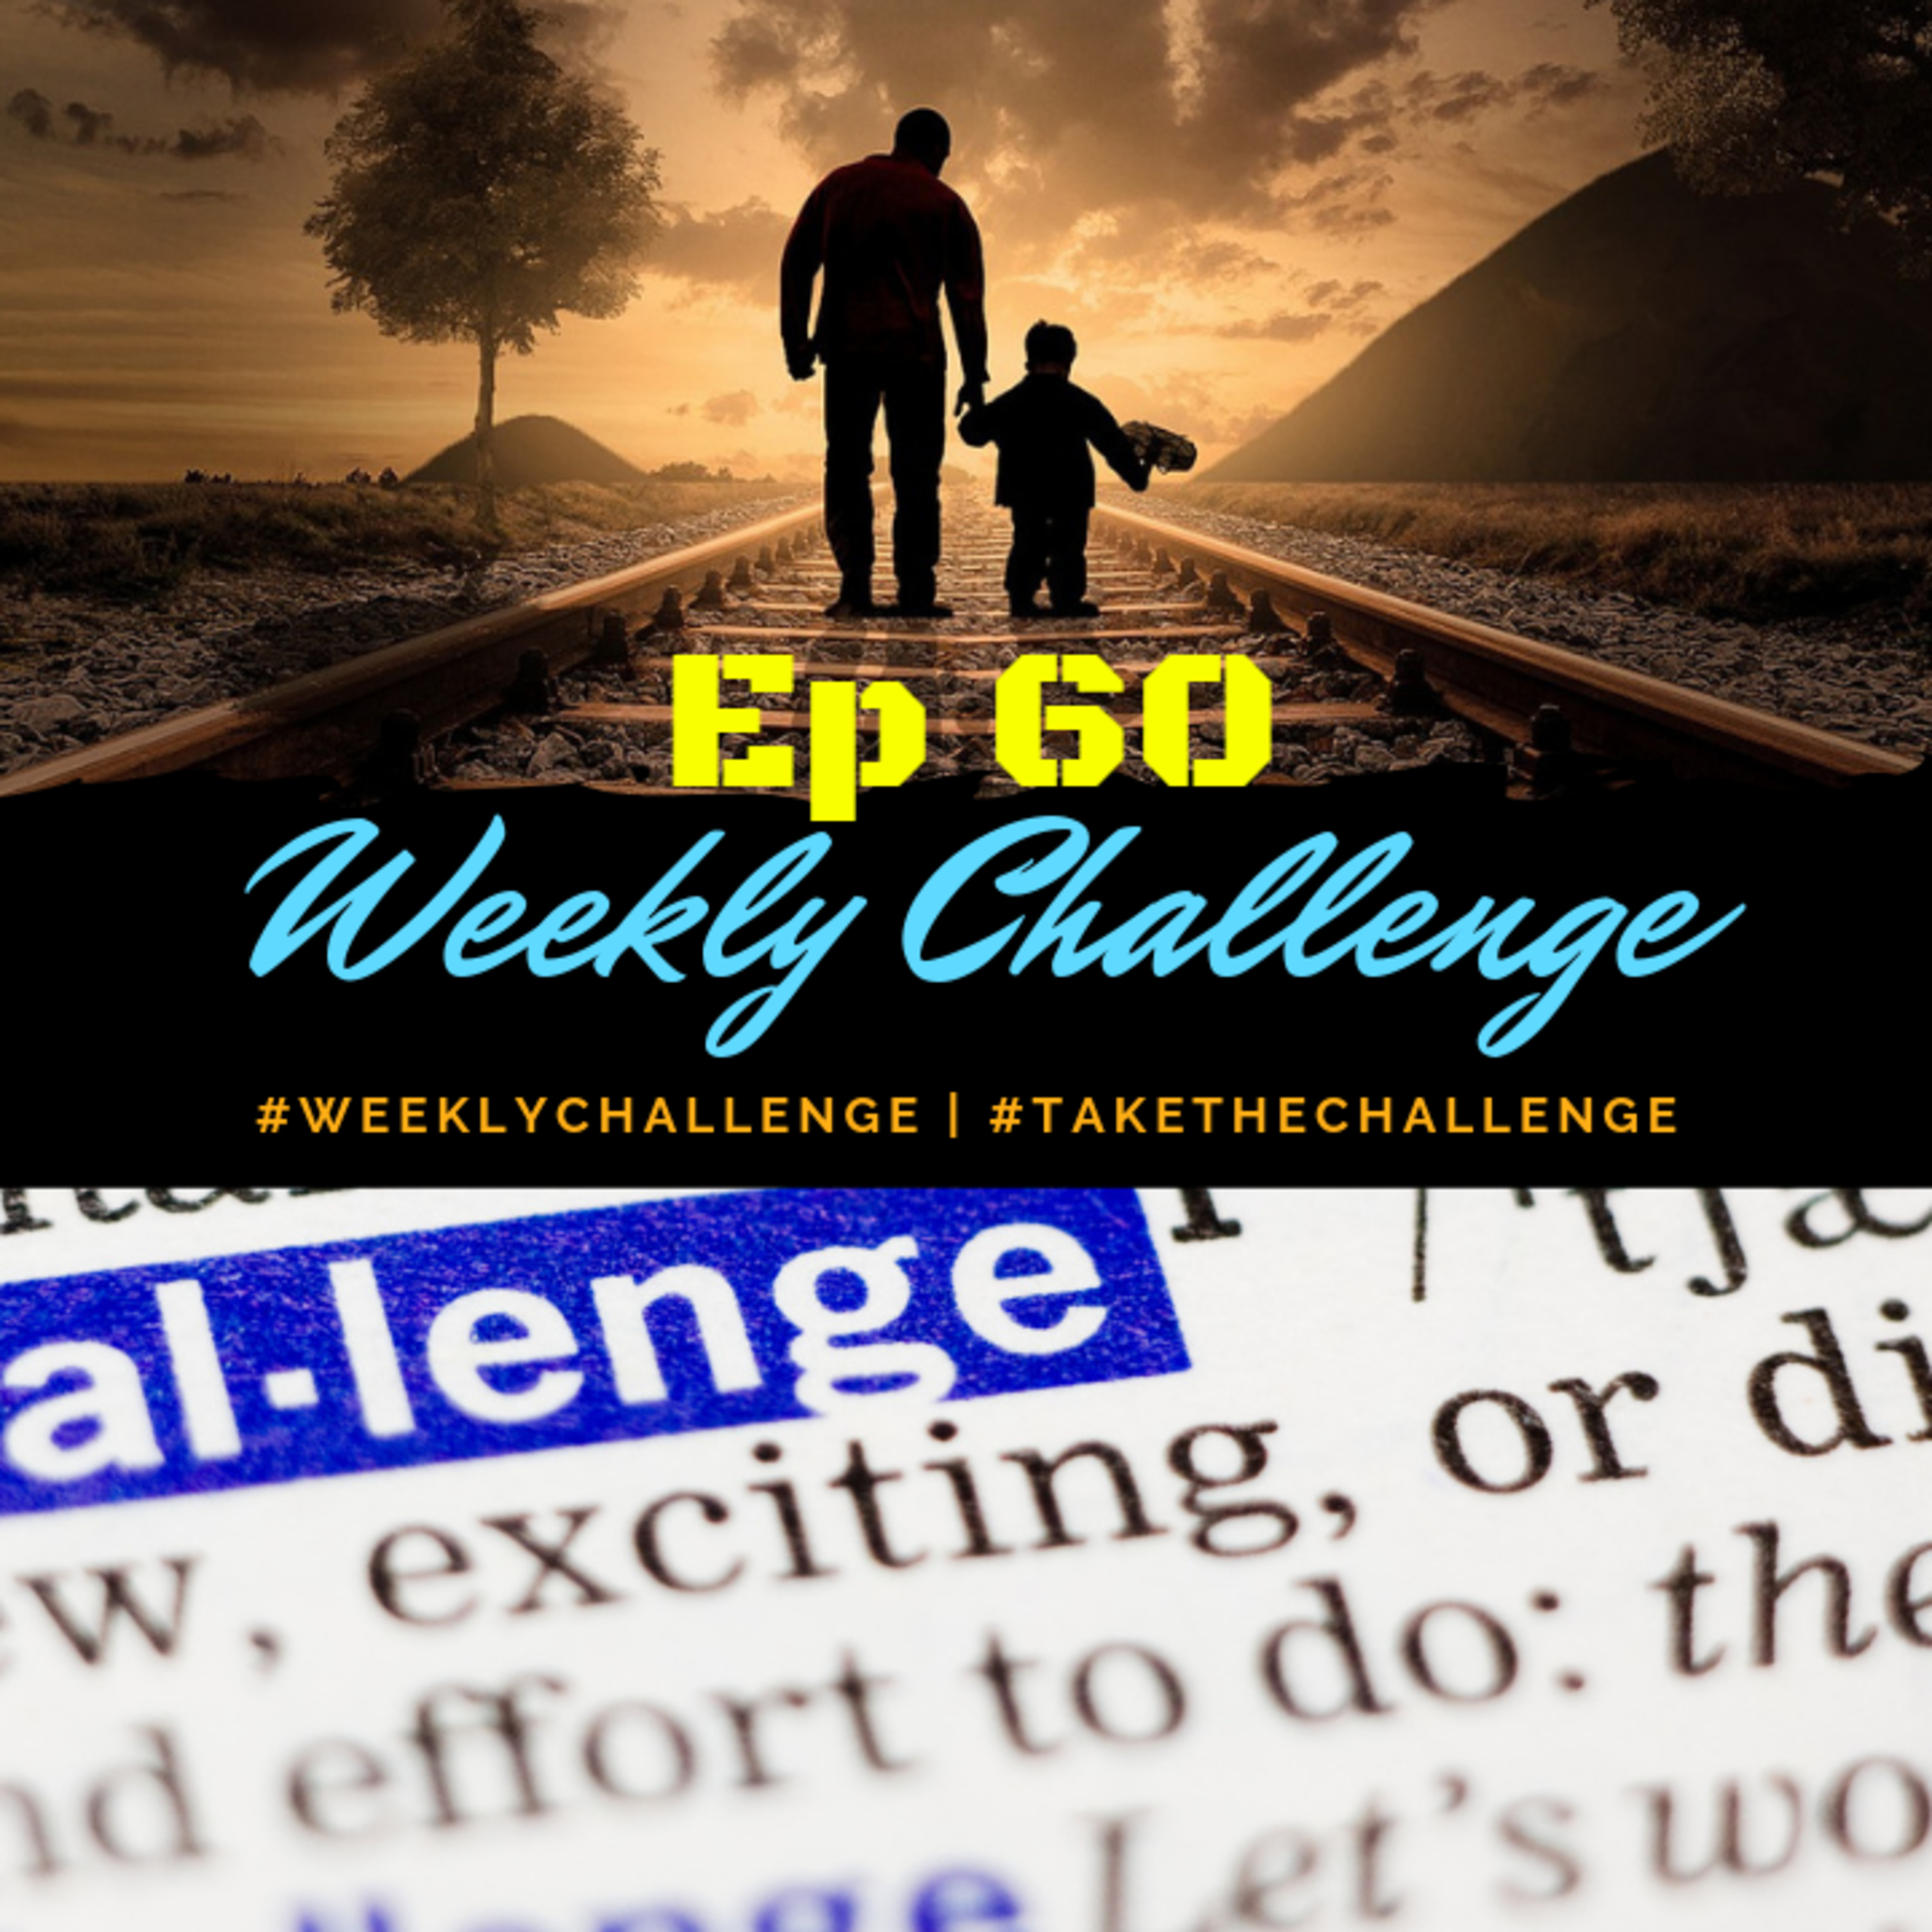 Use the PAUSE | Weekly Challenge From Ep 60